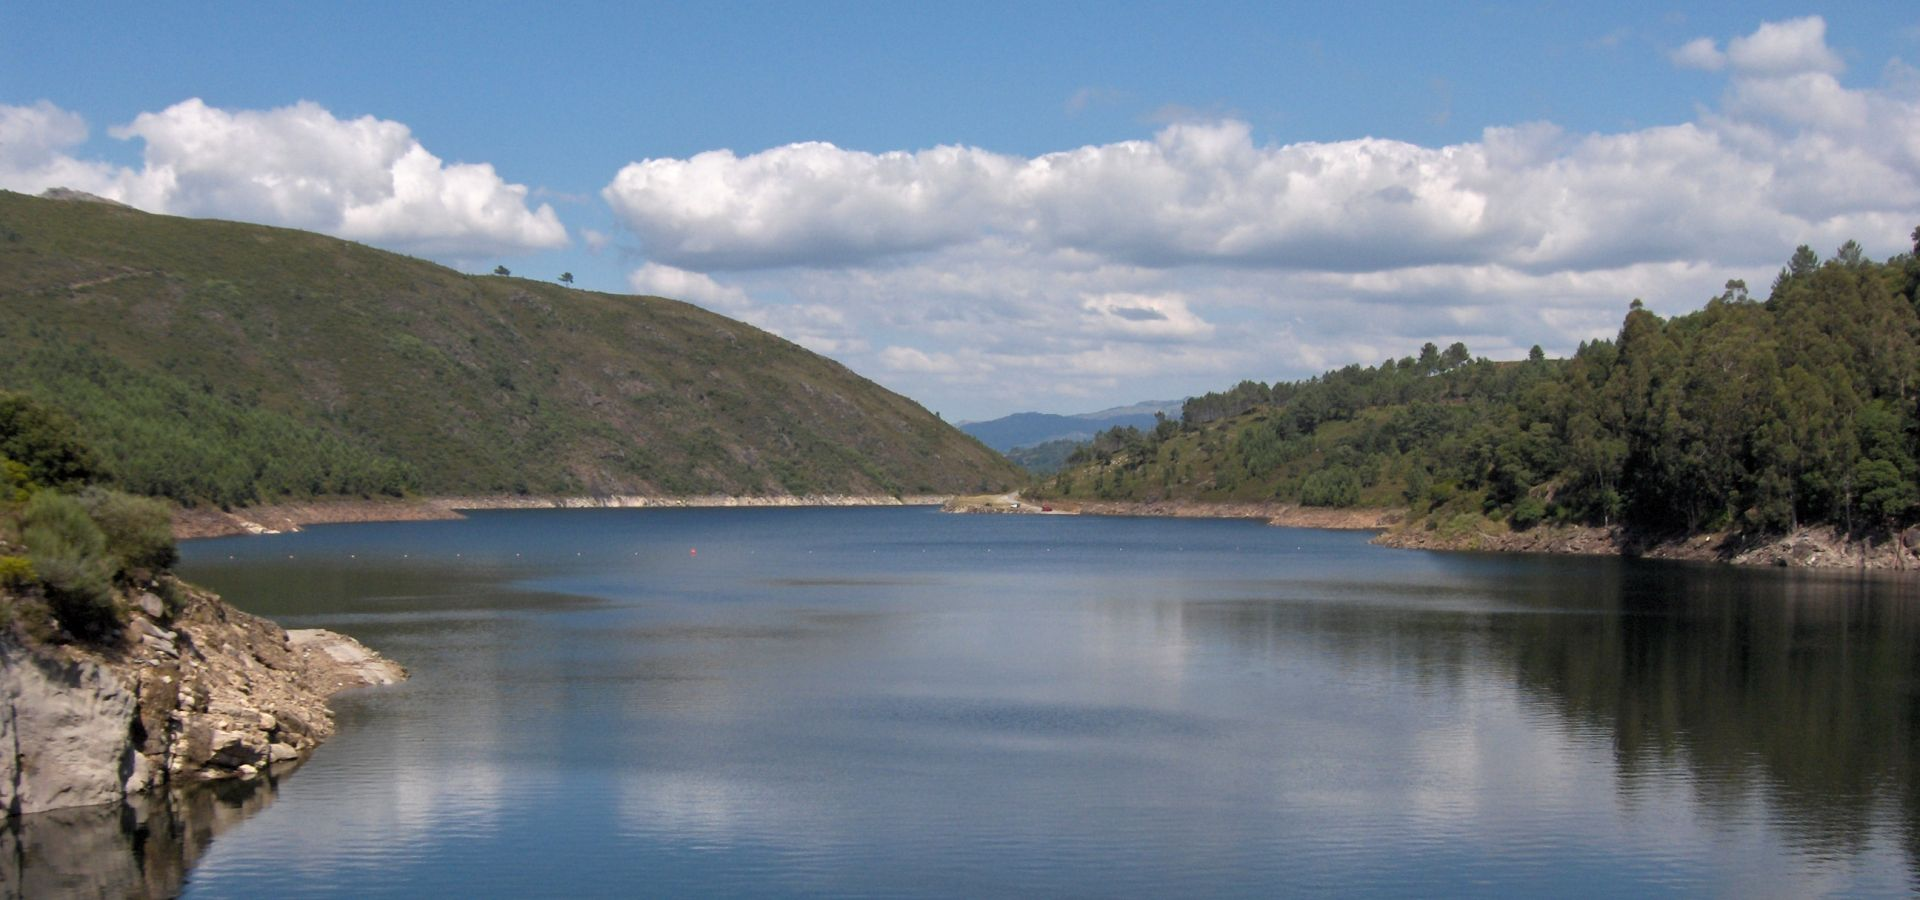 The Alto Lindoso dam in Portugal looks like a usual lake.